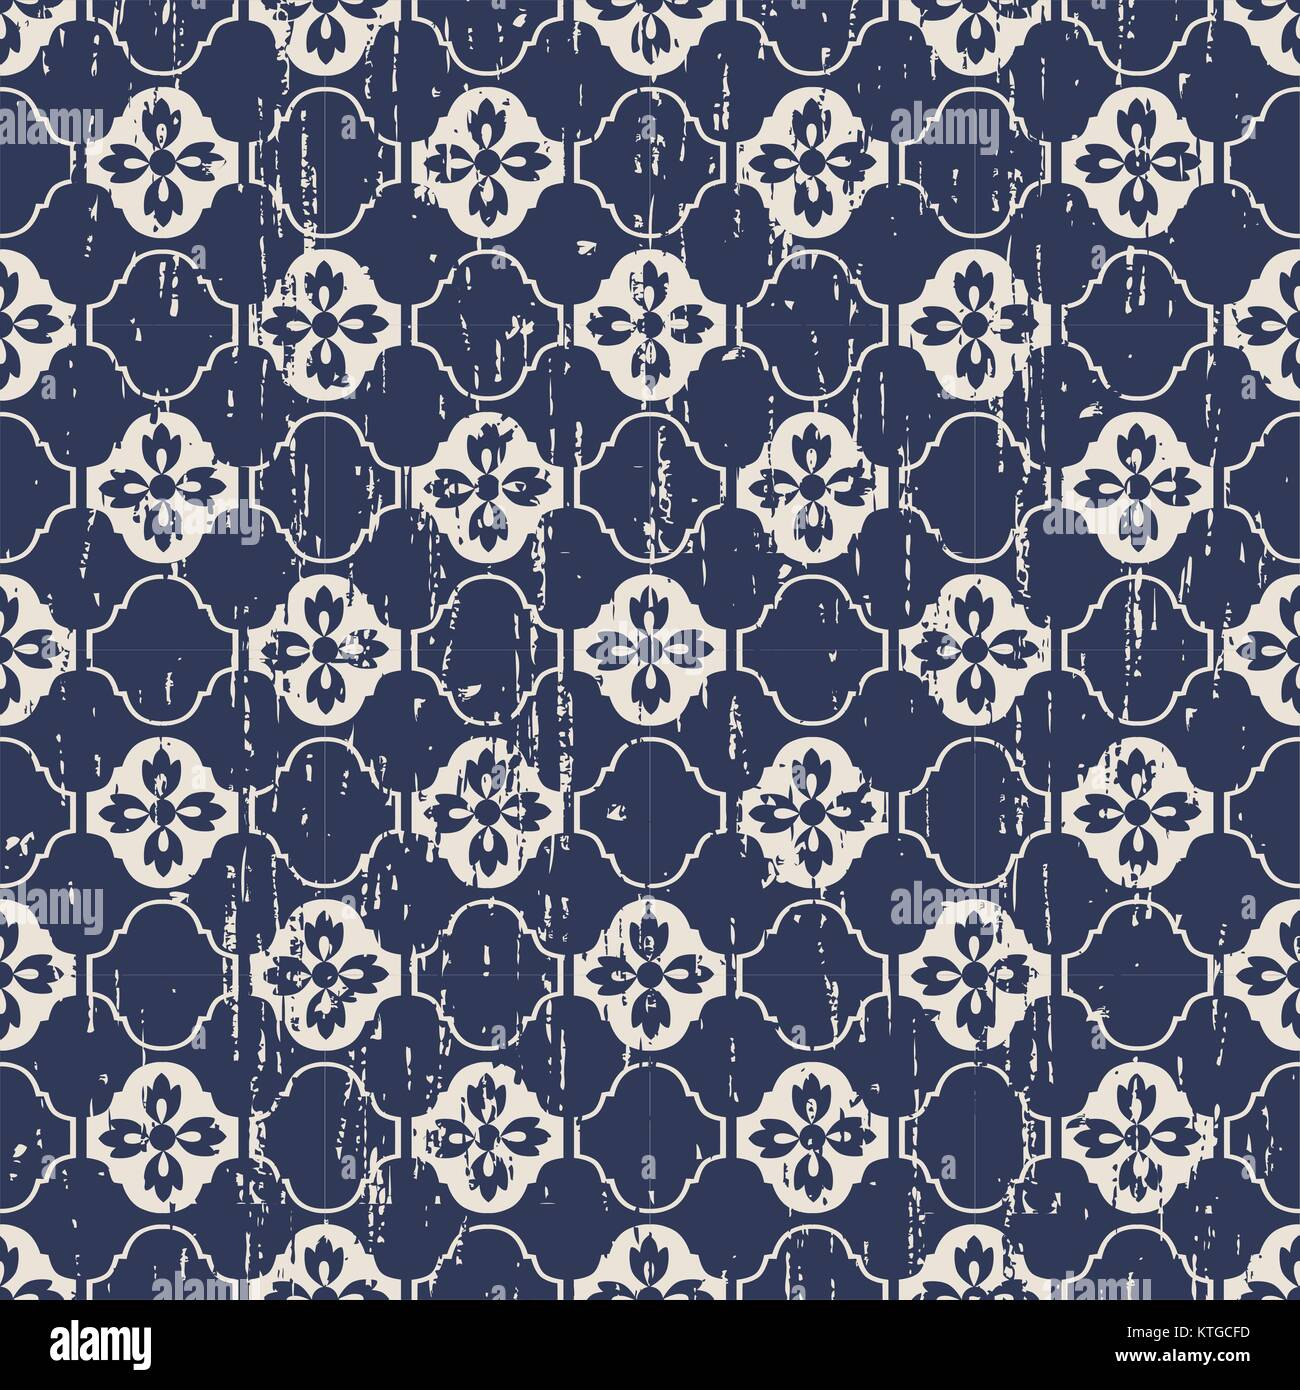 Seamless vintage worn out flower pattern background - Stock Vector